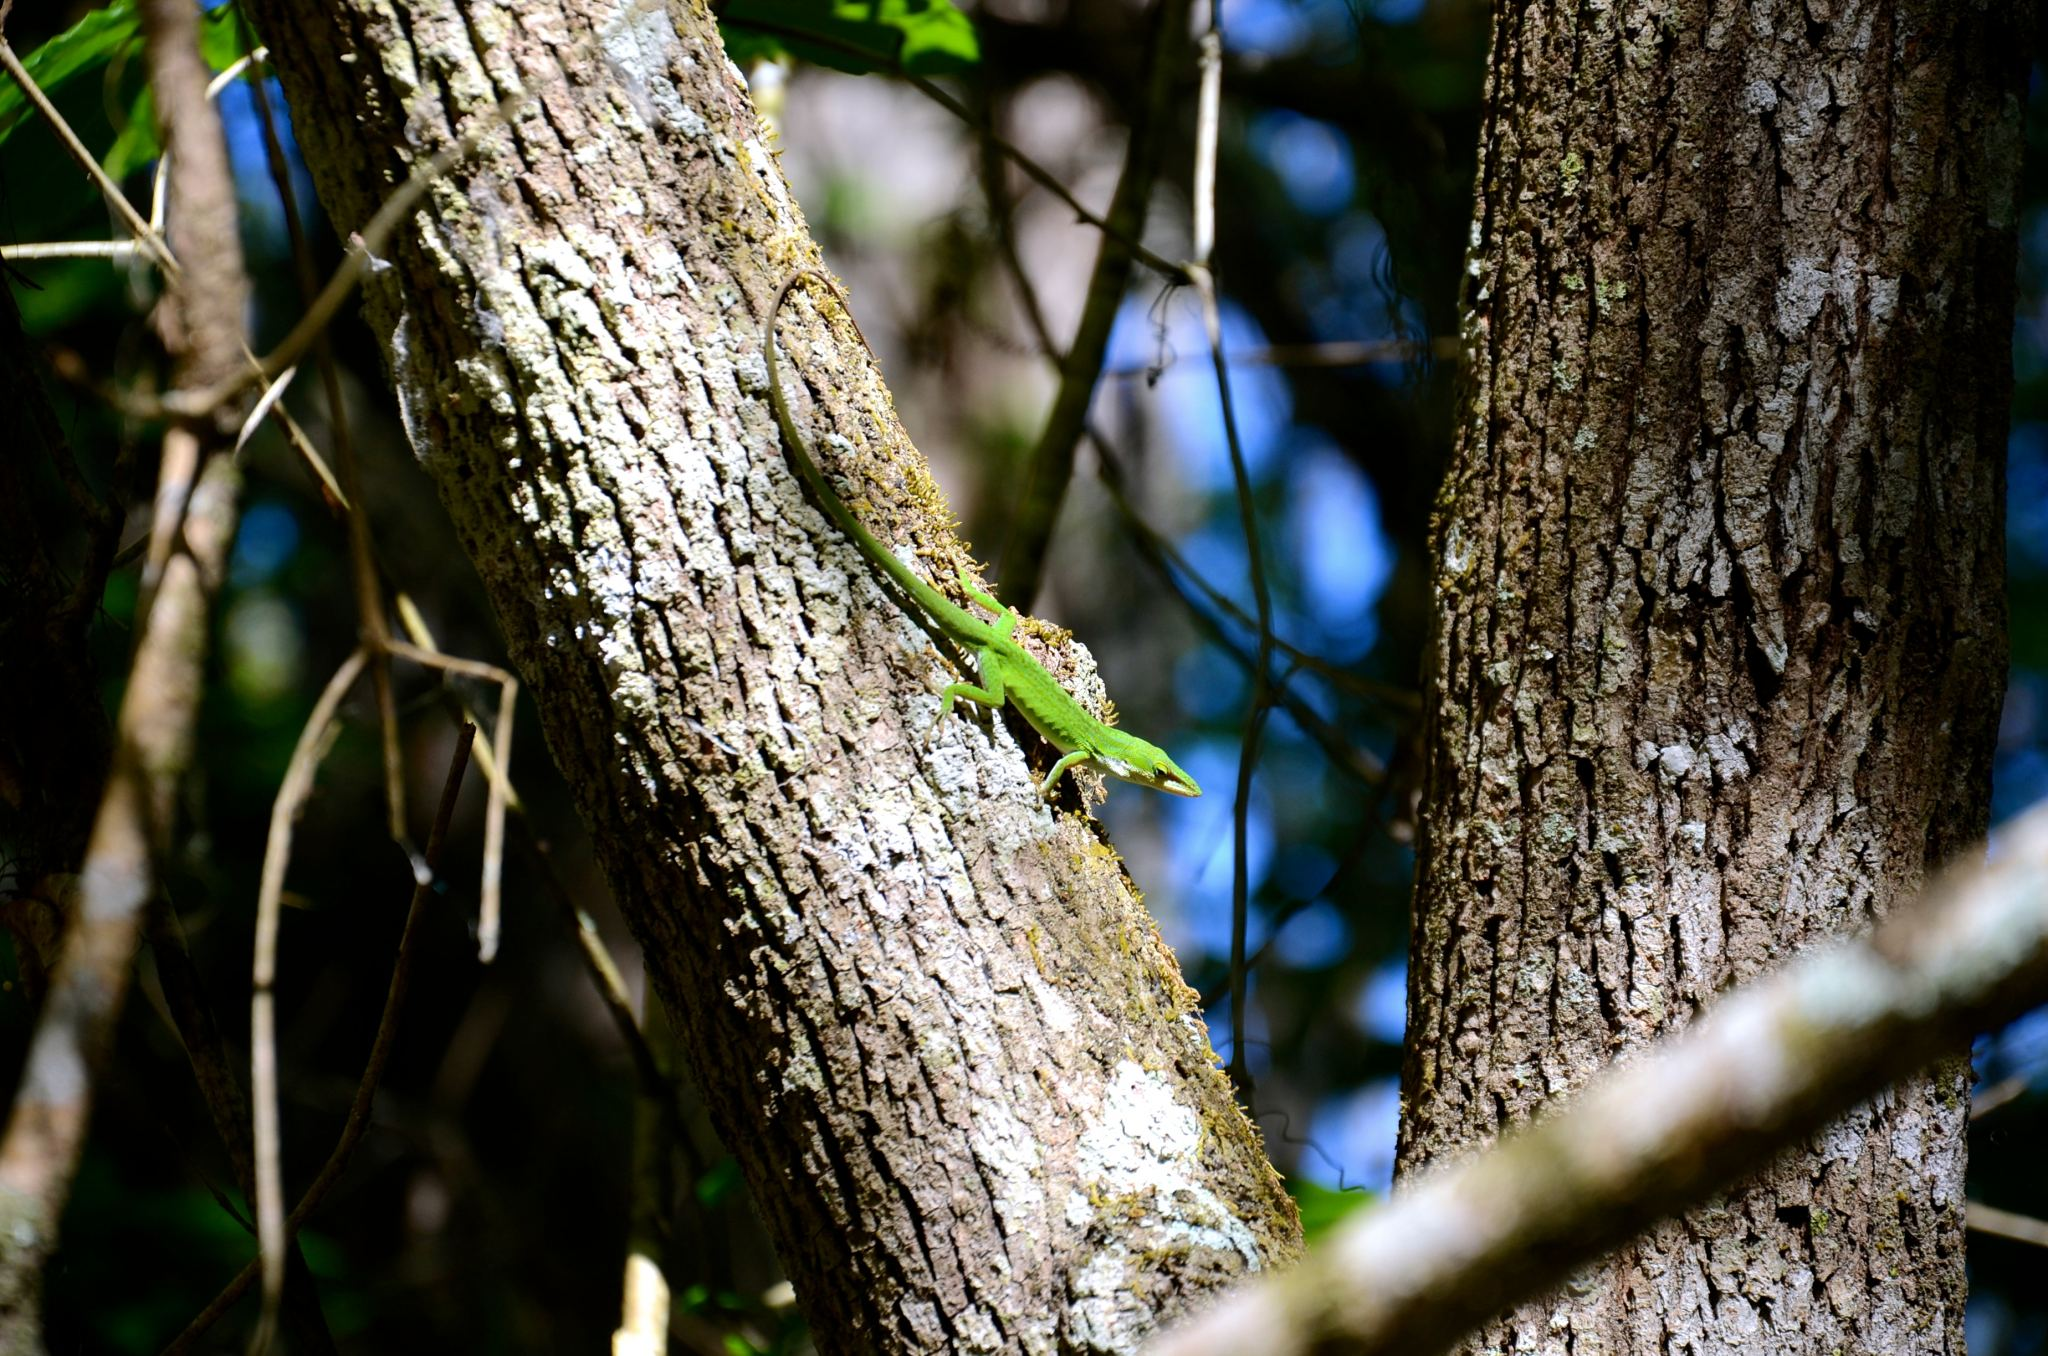 Lizard at Corkscrew Swamp Sanctuary in Naples Florida.